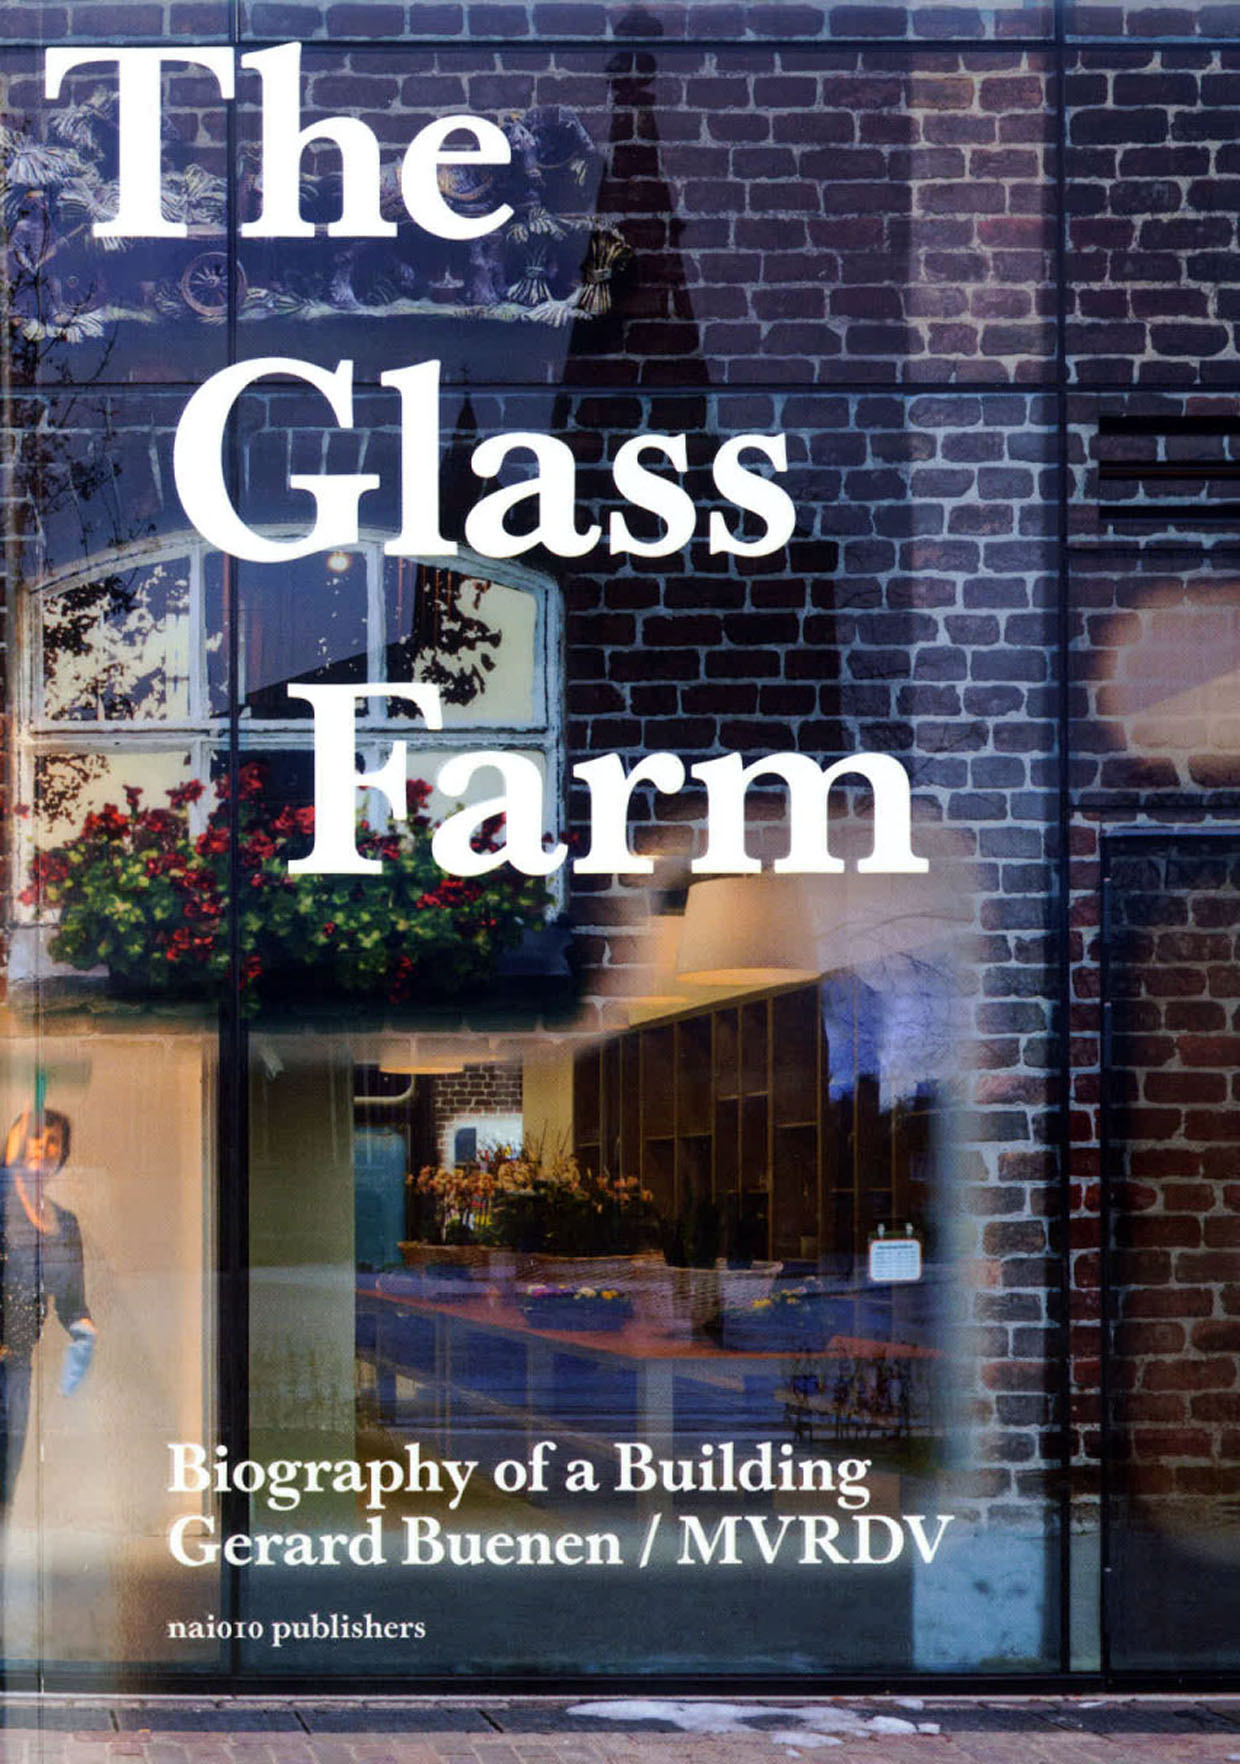 Written Biography of Glass Farm Schijndel: 33 years construction process - reading like a novel